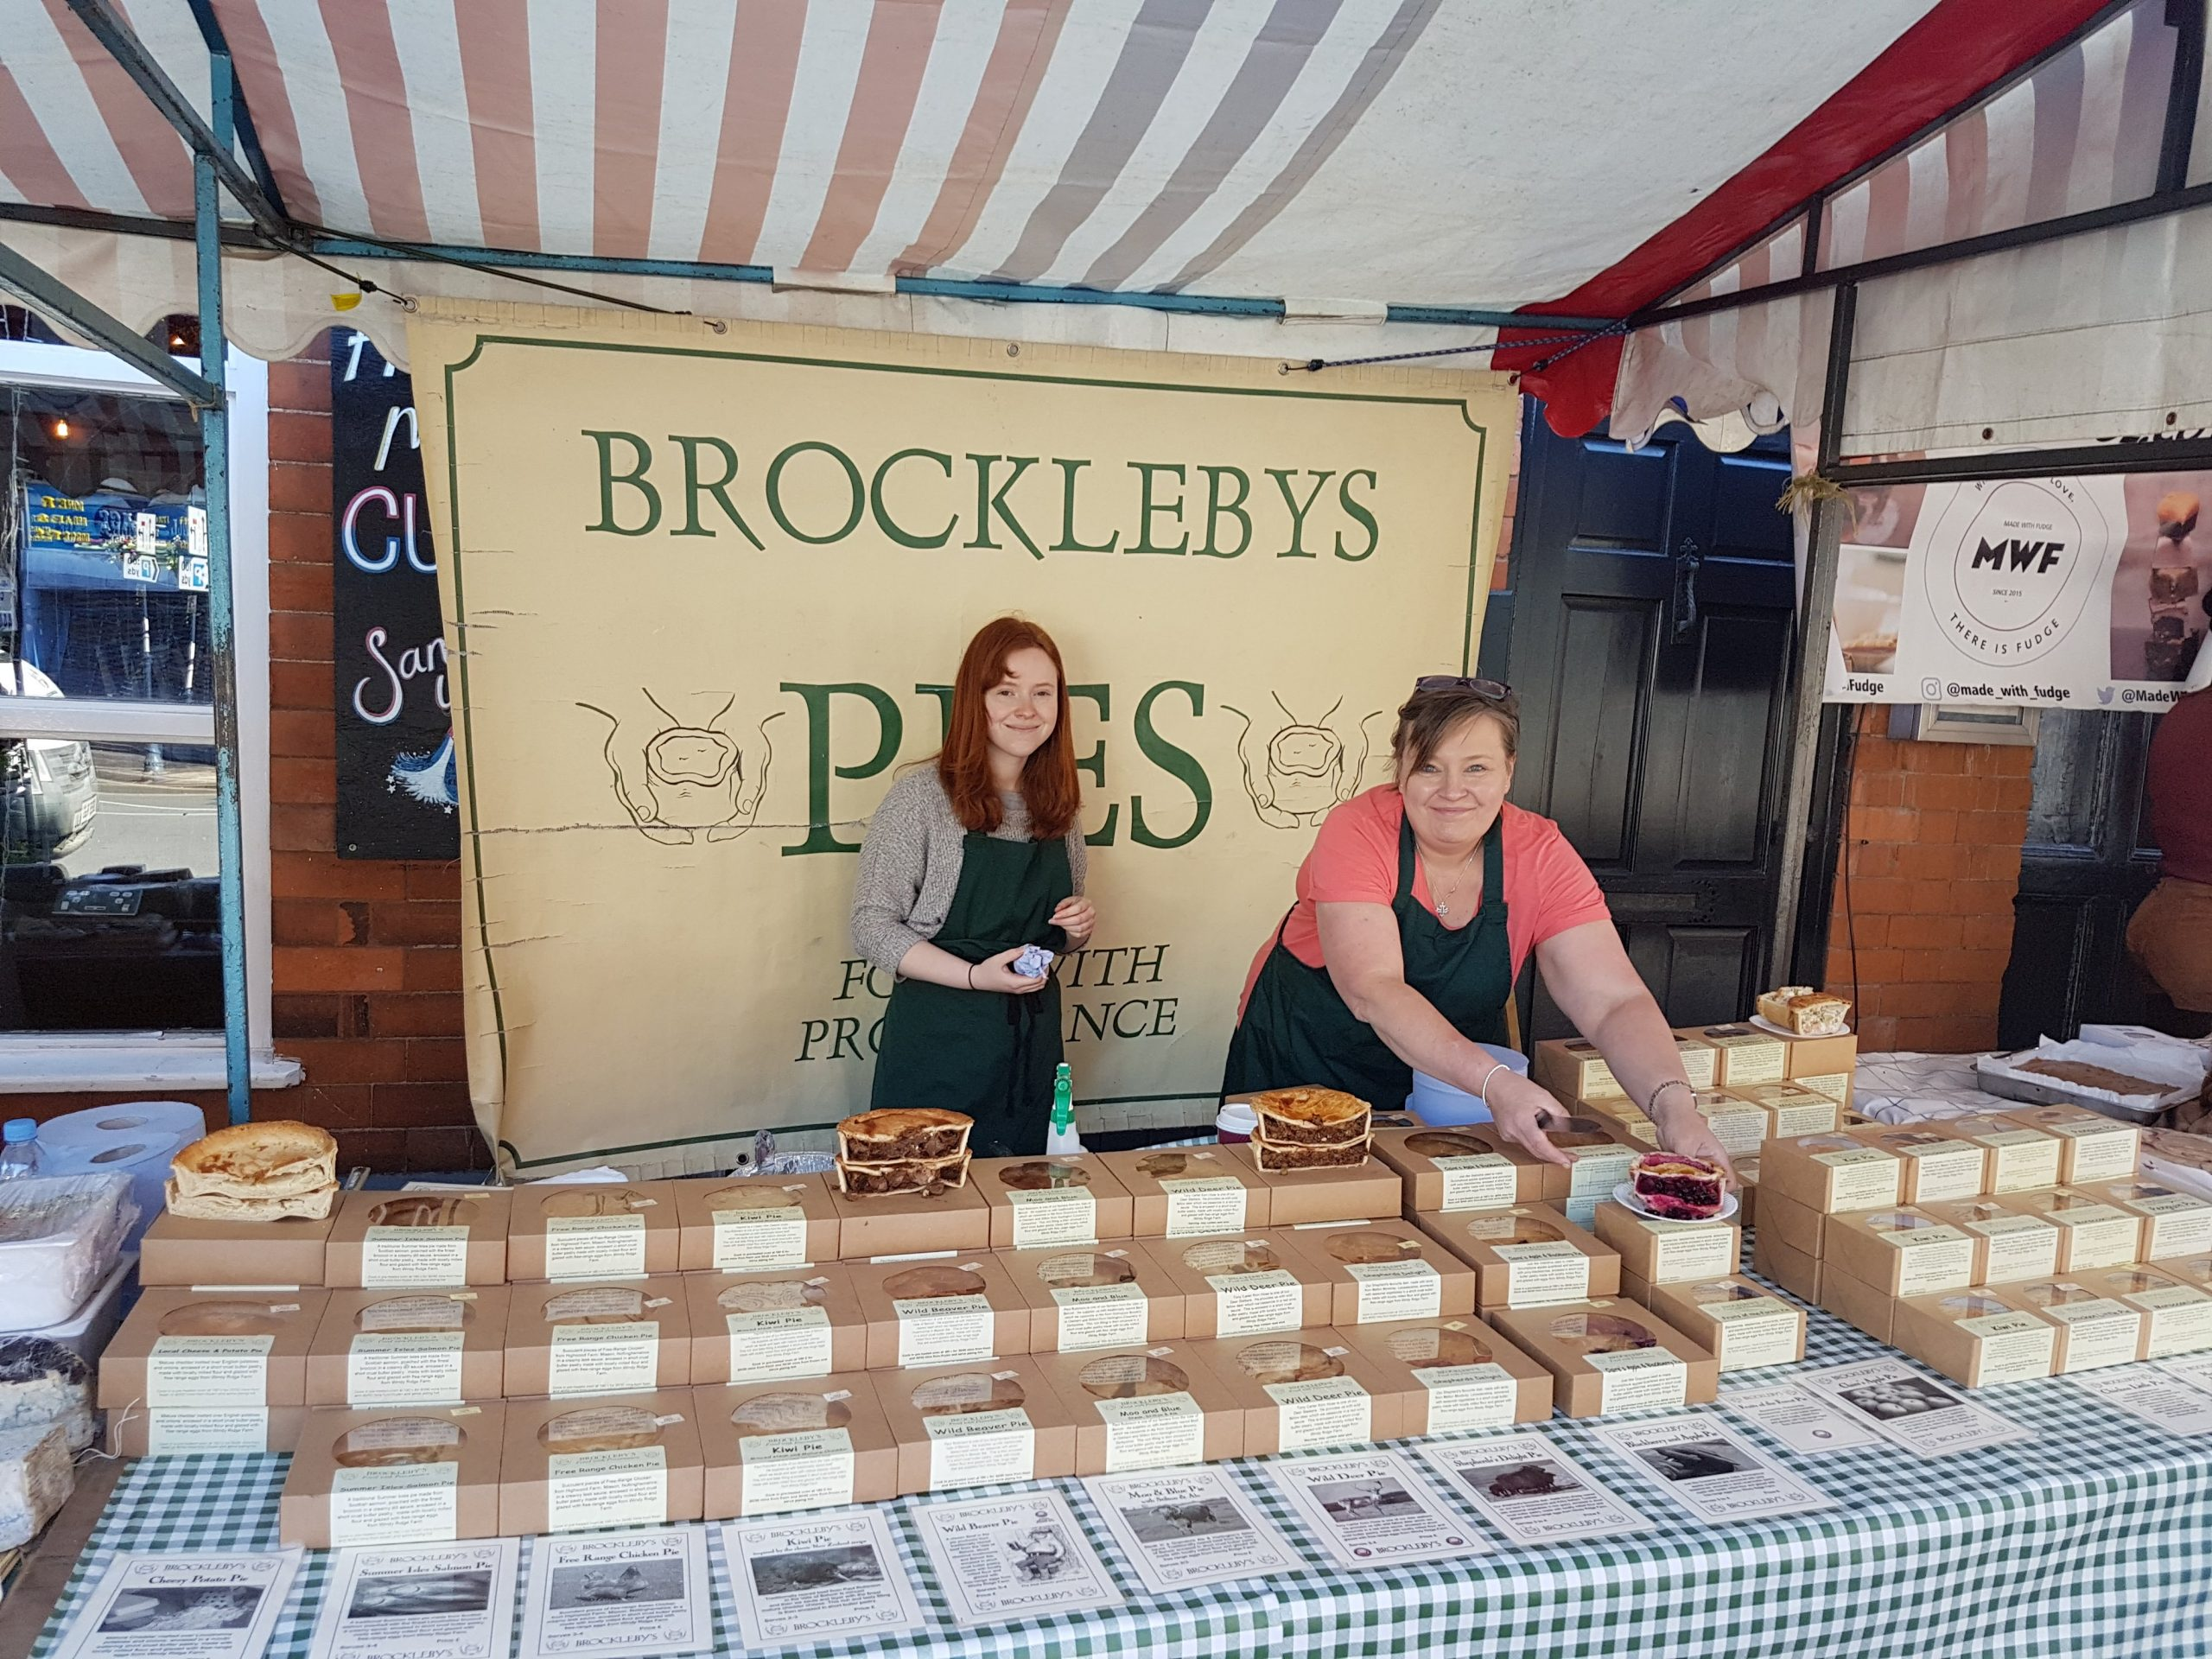 Brockleby's Pies